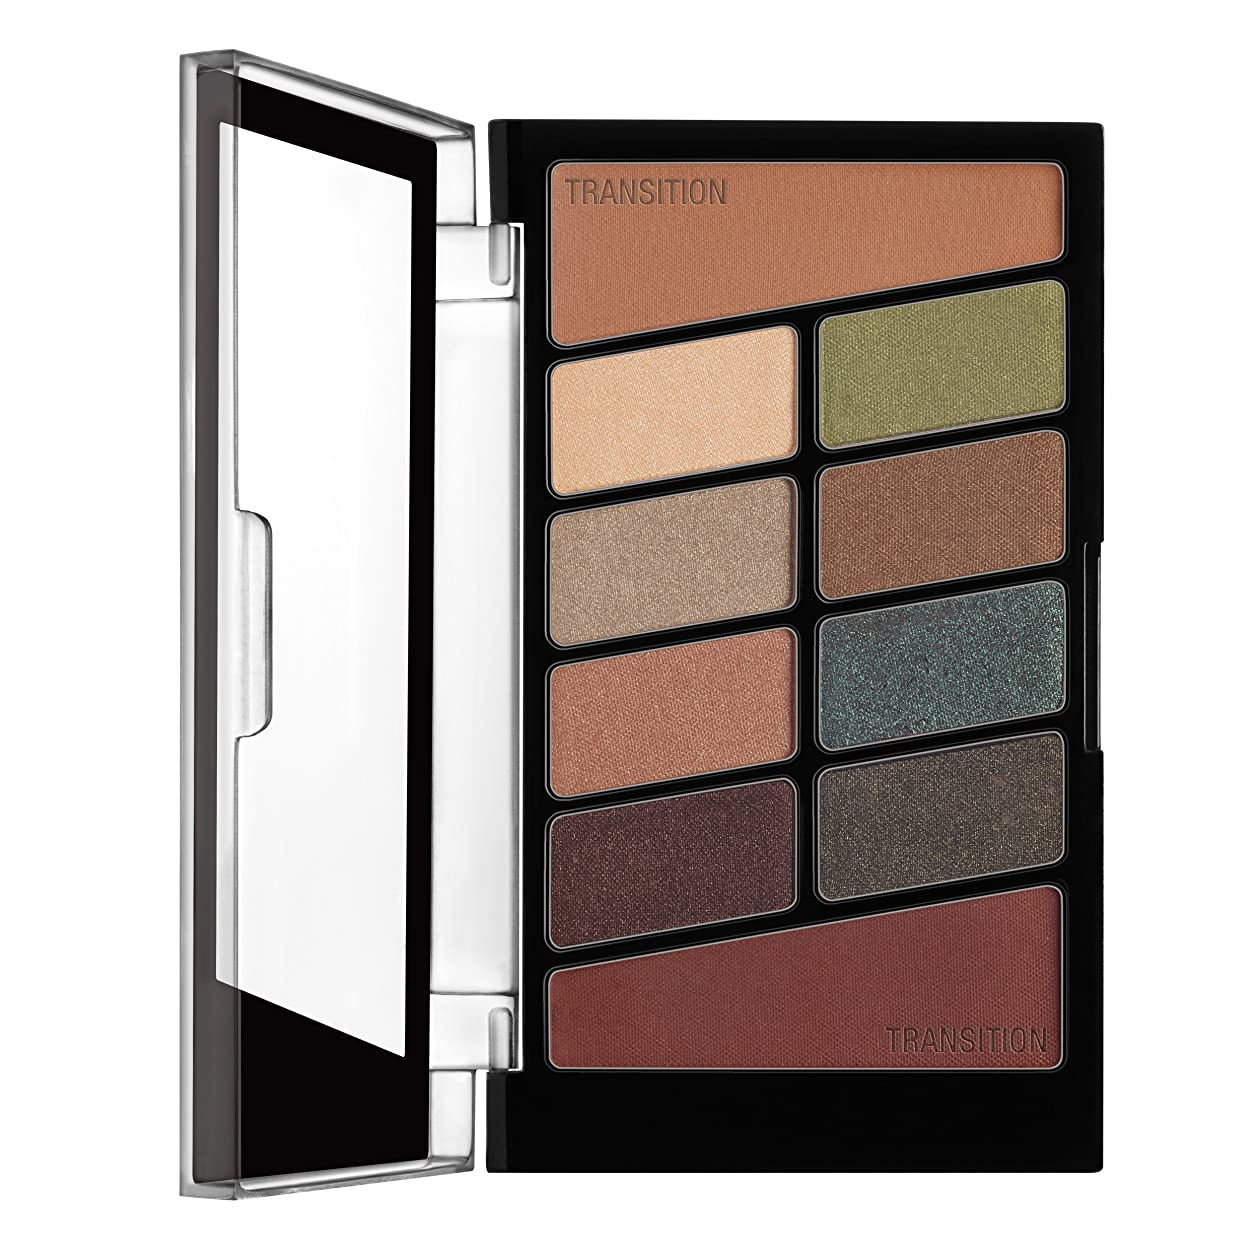 ドラム寄生虫太鼓腹WET N WILD Color Icon Eyeshadow 10 Pan Palette - Comfort Zone (並行輸入品)